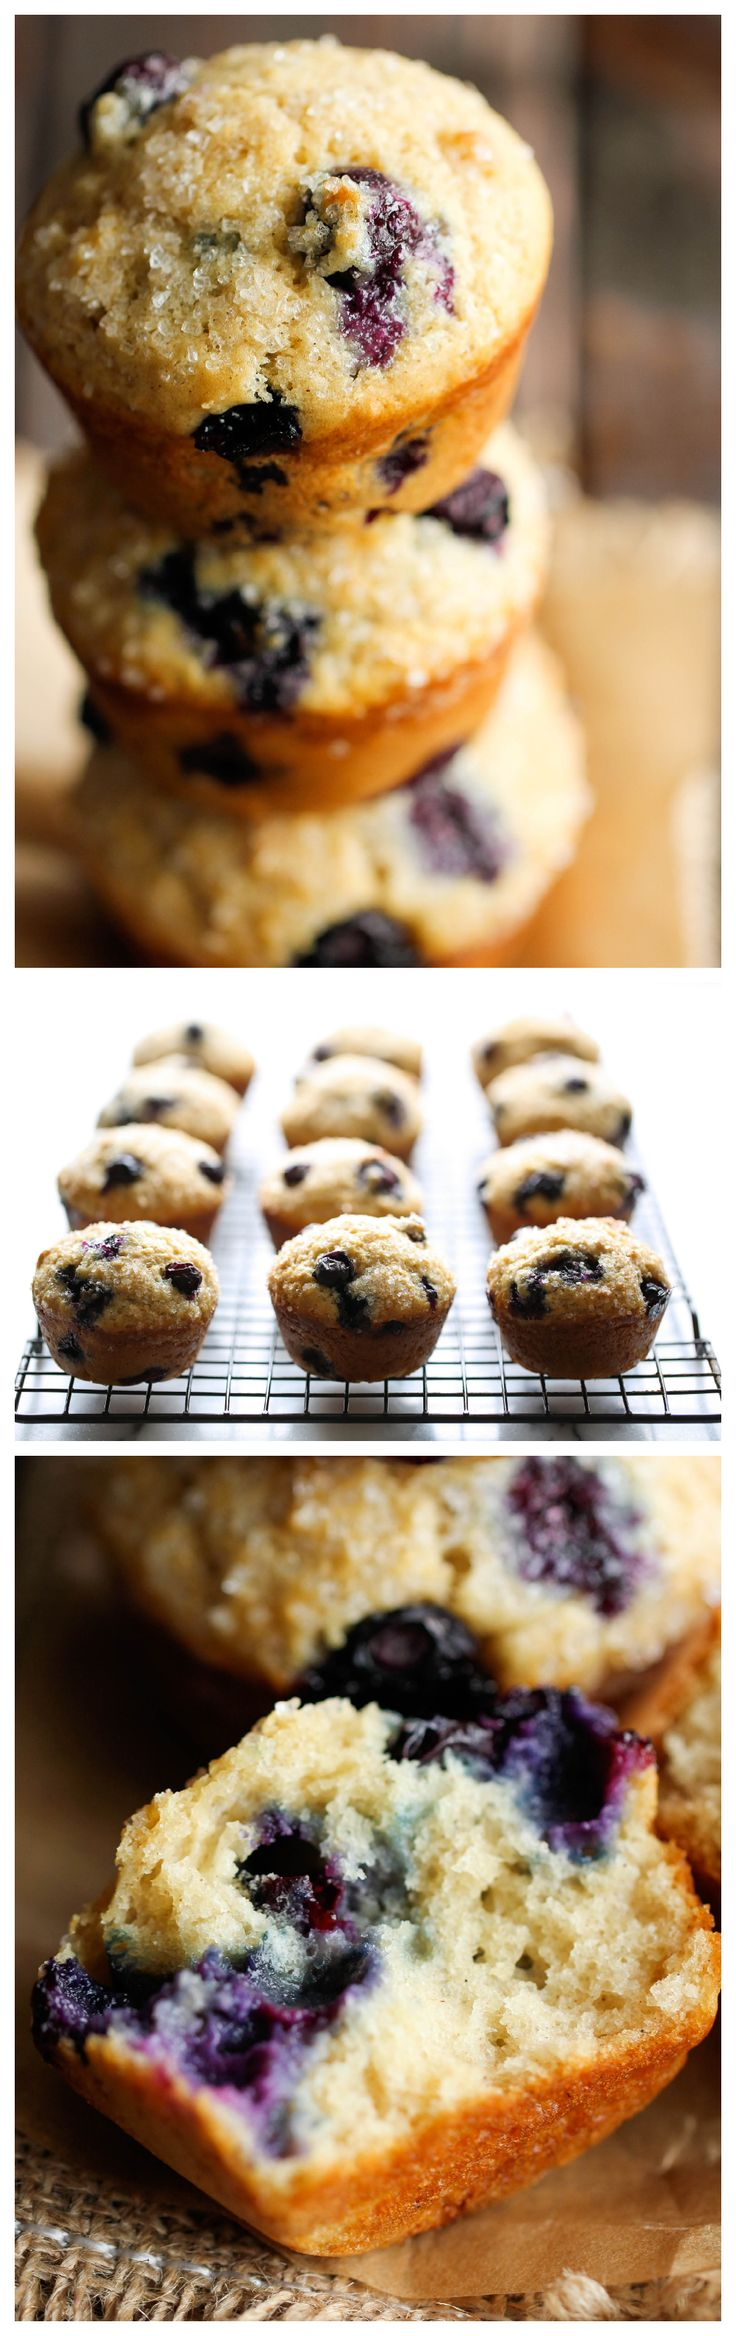 Blueberry Vanilla Muffins - These light and airy muffins are loaded with juicy blueberries and extra vanilla goodness!